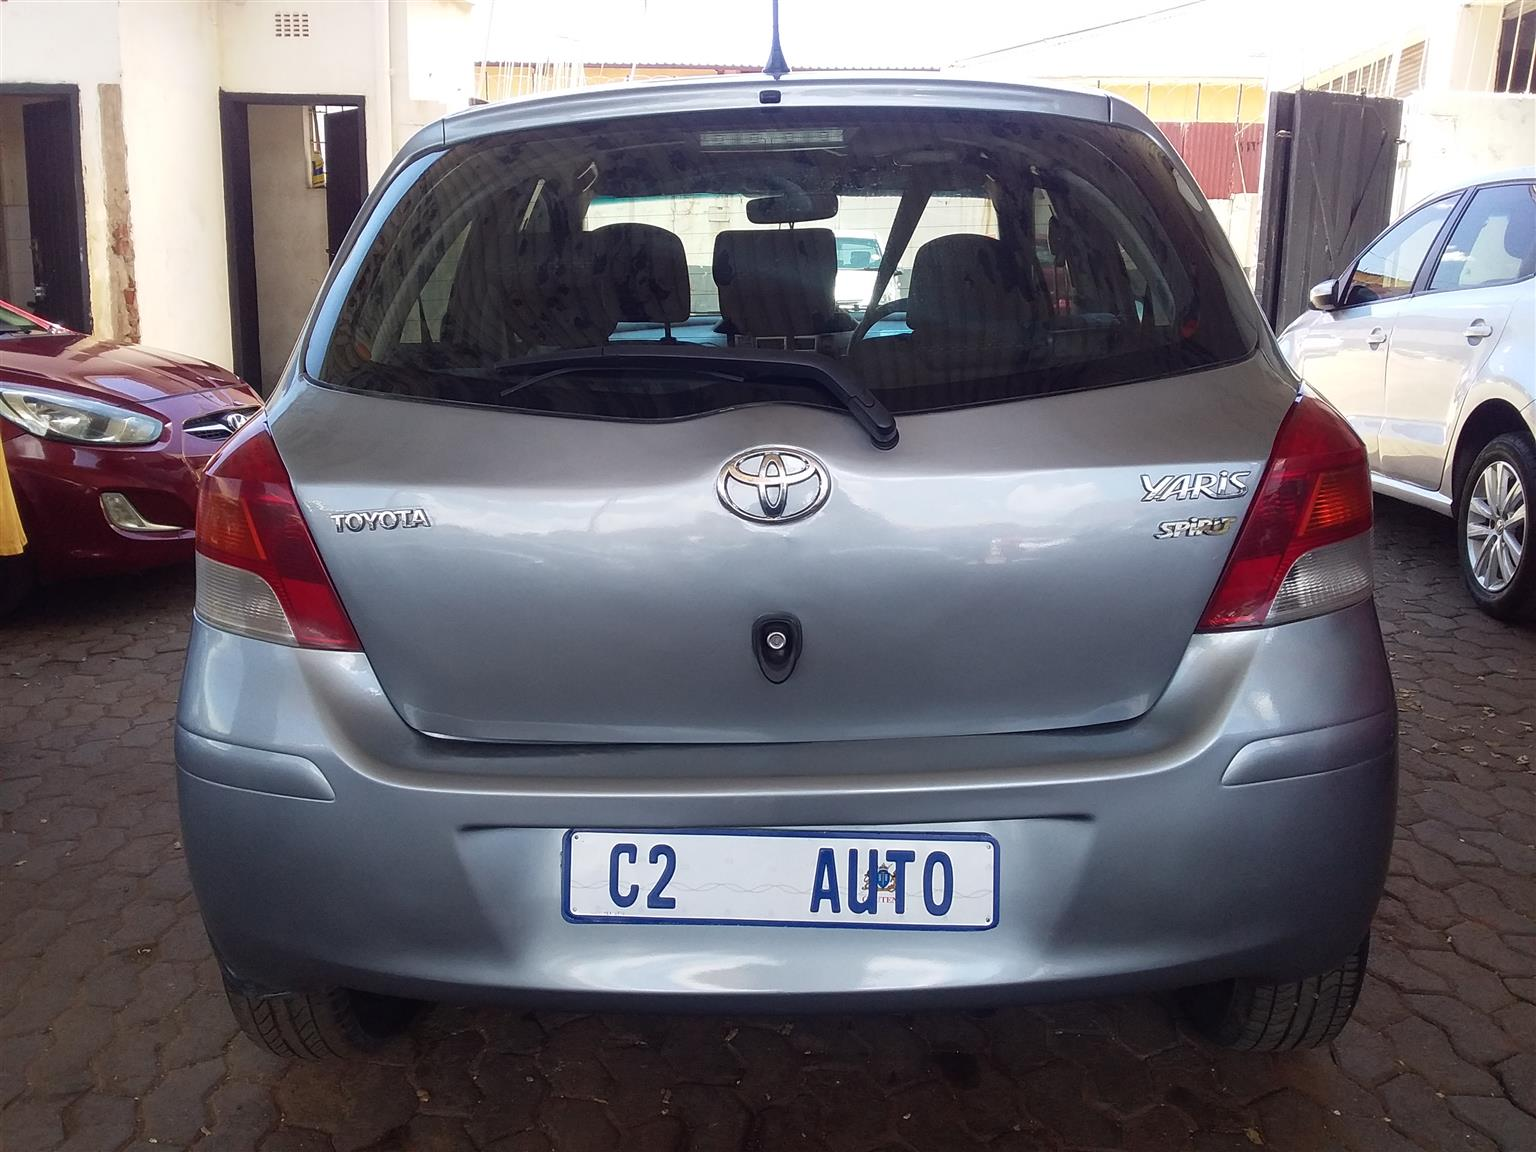 2010 Toyota Yaris 1.3 5 door T3